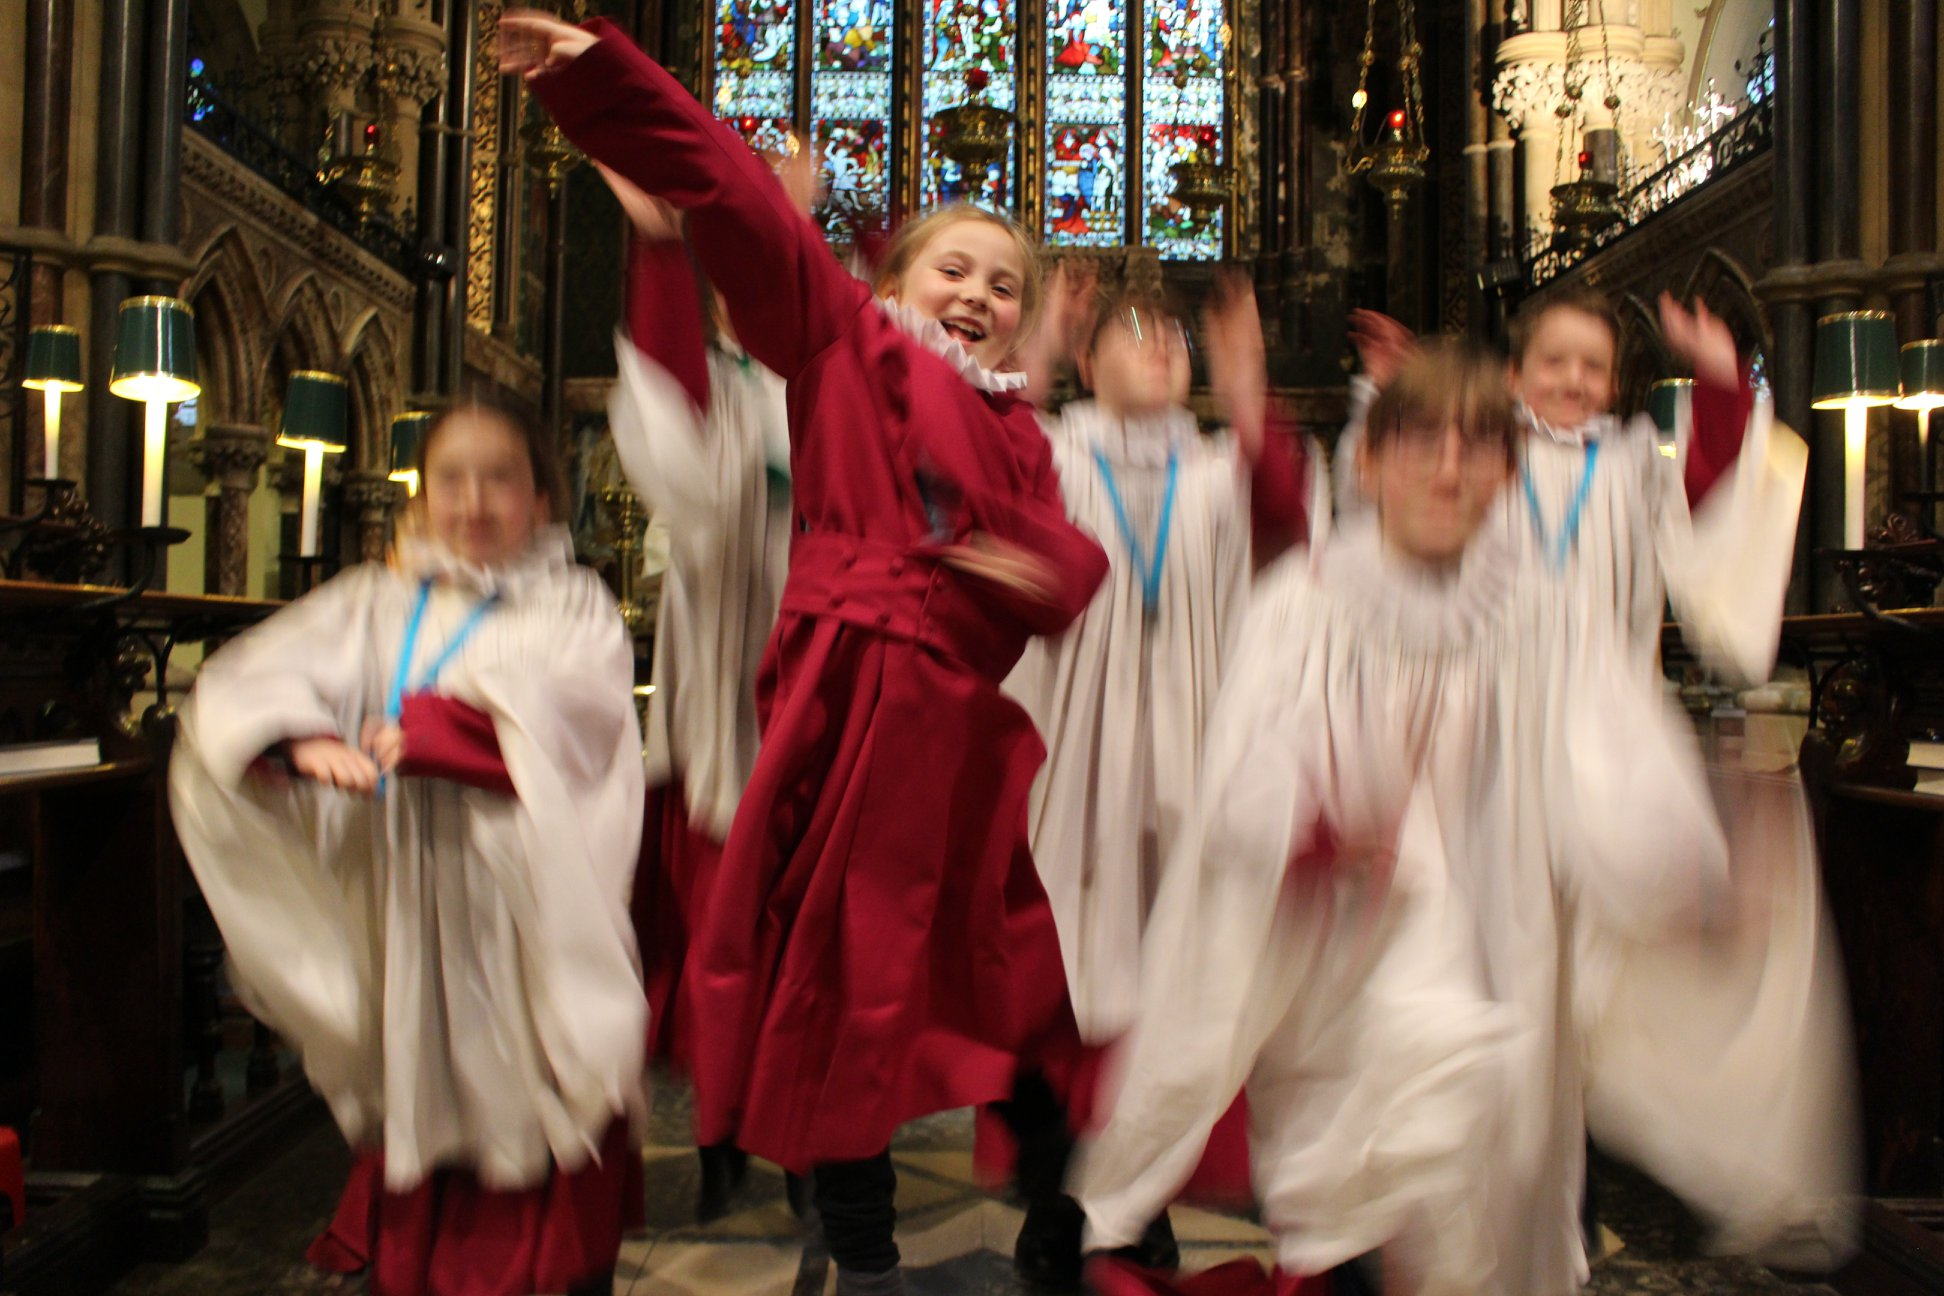 Trebles in the choir happy and jumping inside the church